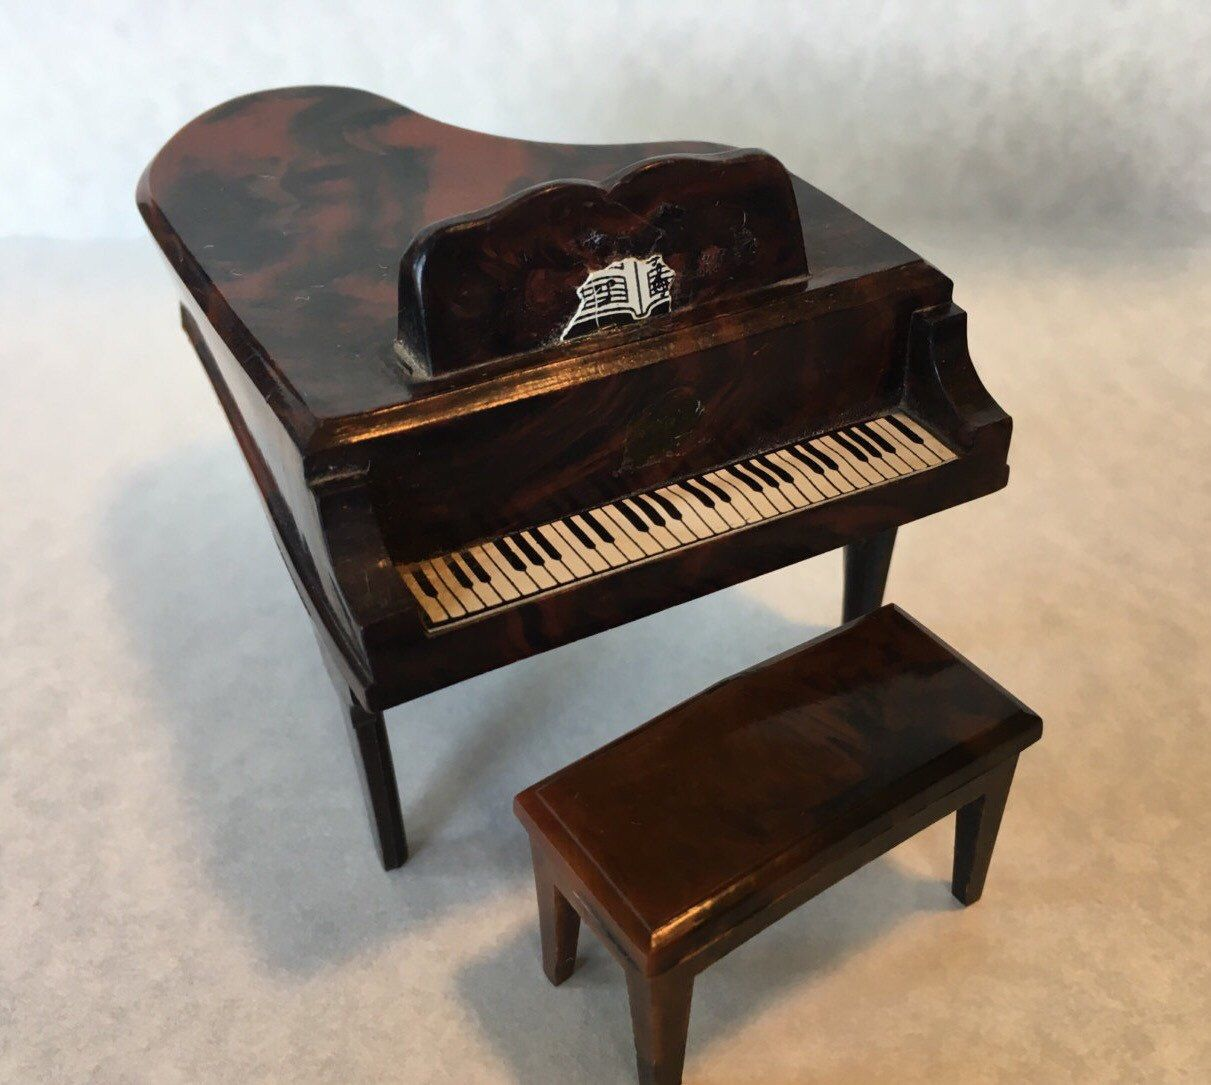 Dollhouse Miniature Piano and Bench